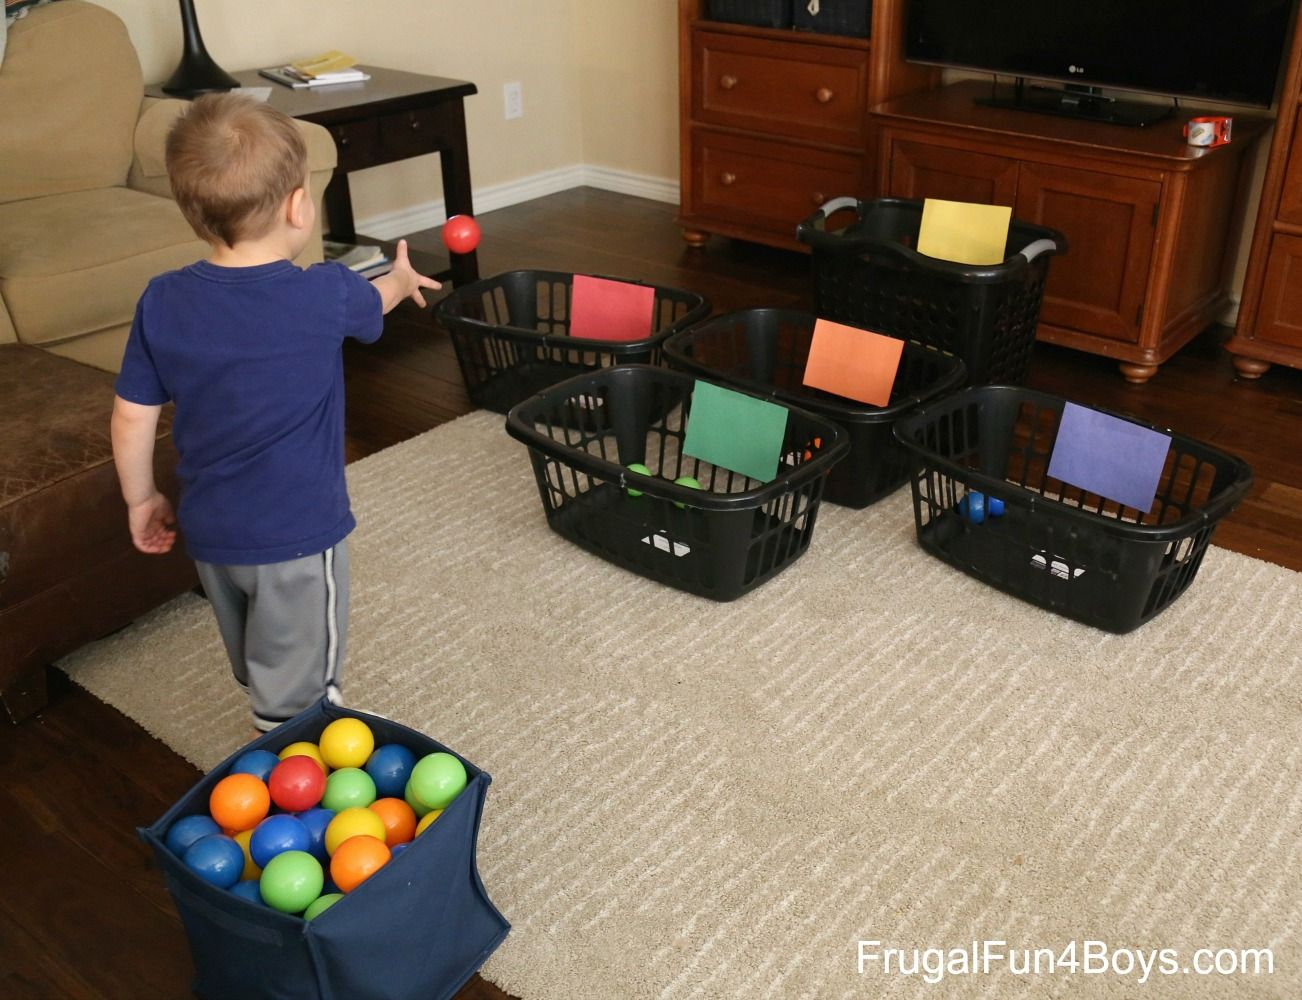 10 Ball Games For Kids Ideas For Active Play Indoors Toddle